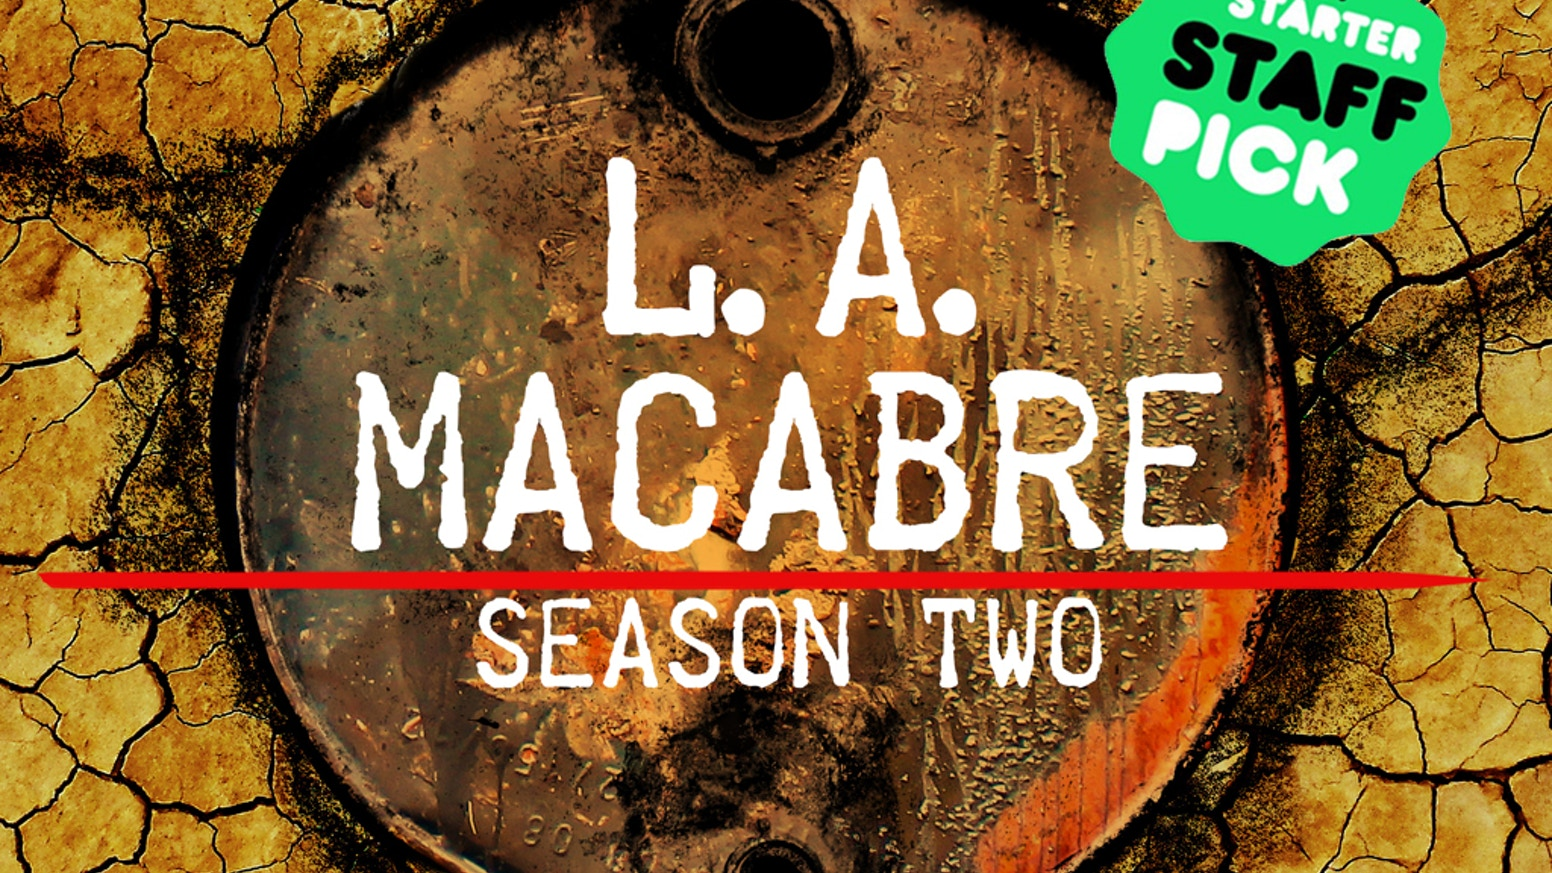 Jamie is missing and her brother will stop at nothing to find her. Season 2 continues the thrilling story of the uncovered L.A. Cult.